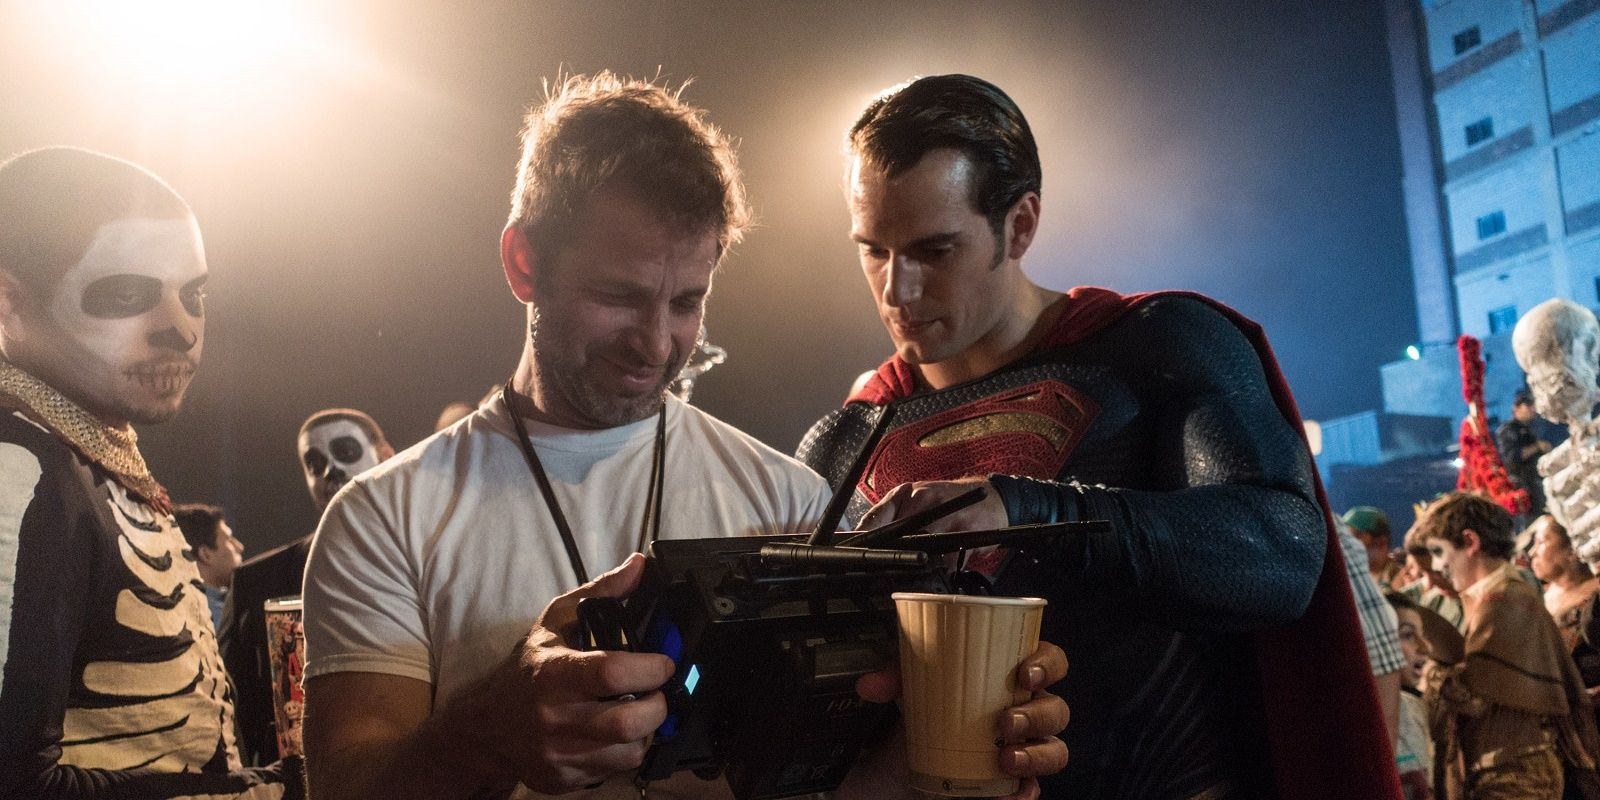 Zack Snyder Himself Confirms a 'Snyder Cut' of Justice League Exists